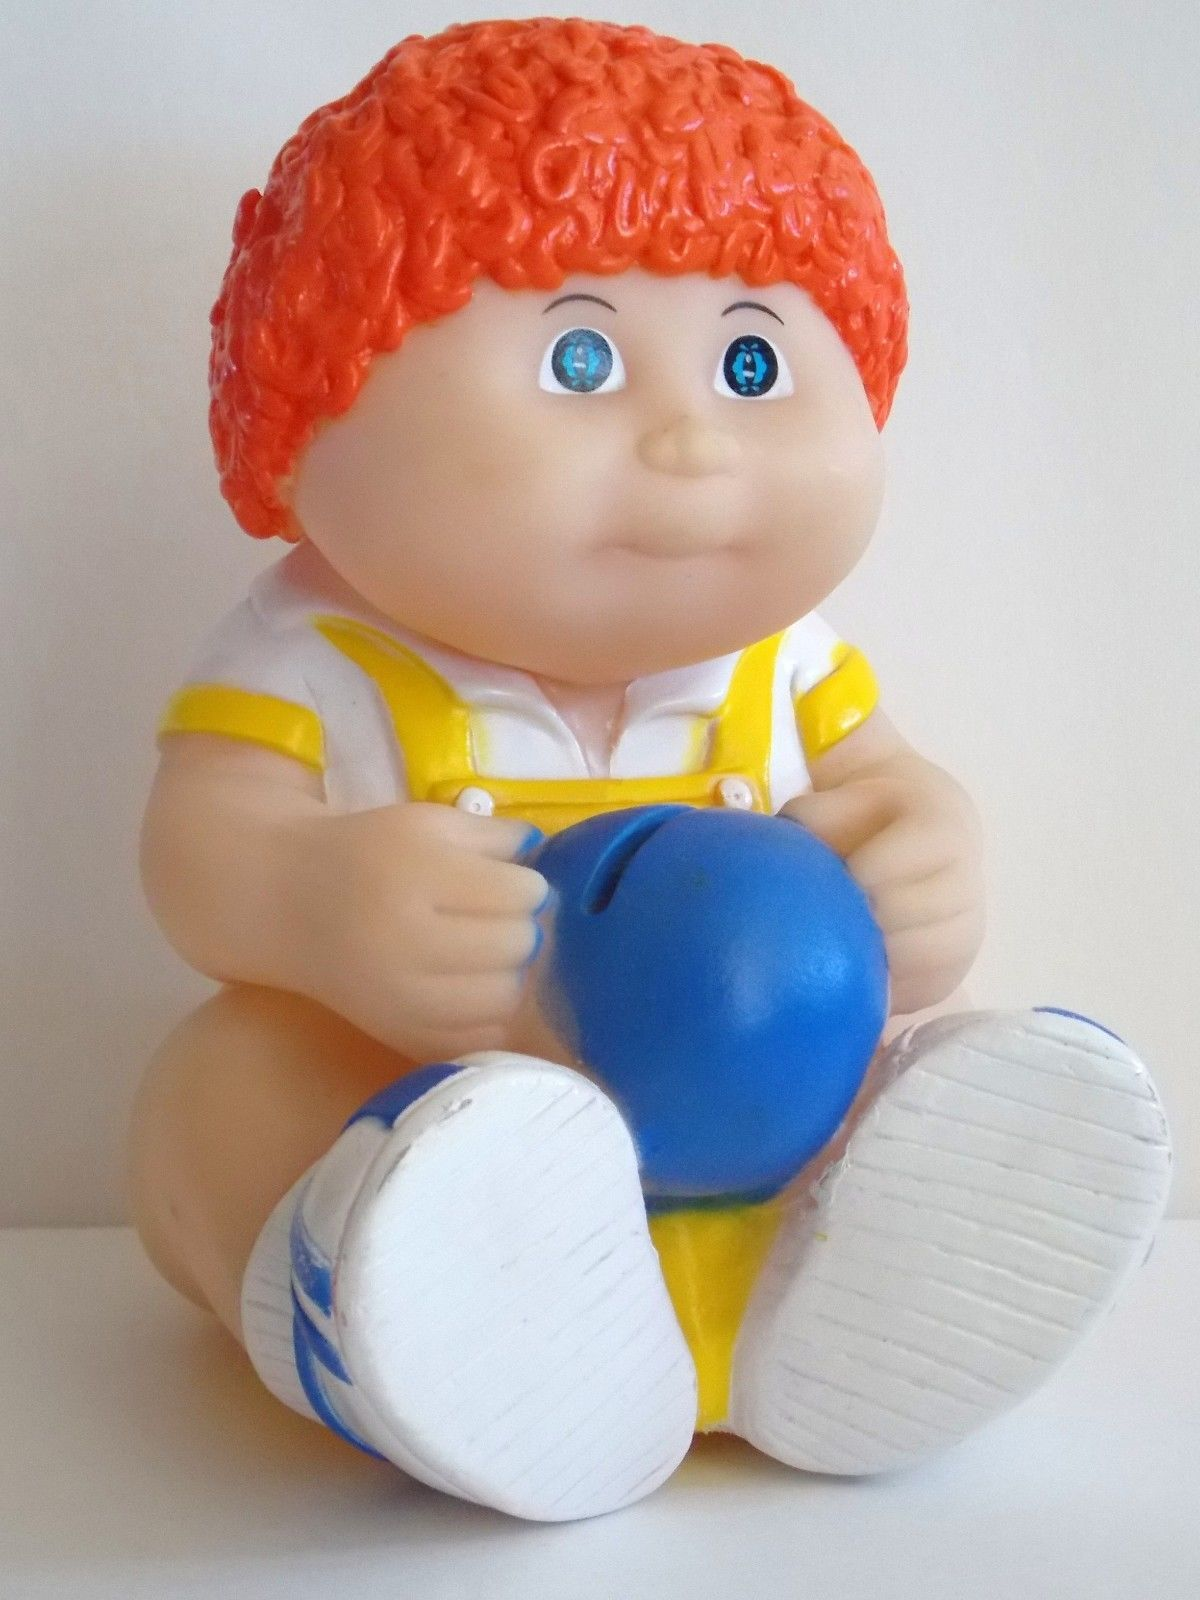 Vintage 1983 Cabbage Patch Kids Doll Coin Piggy Bank Star Power Rare Red Hair Ebay Cabbage Patch Kids Dolls Cabbage Patch Kids Cabbage Patch